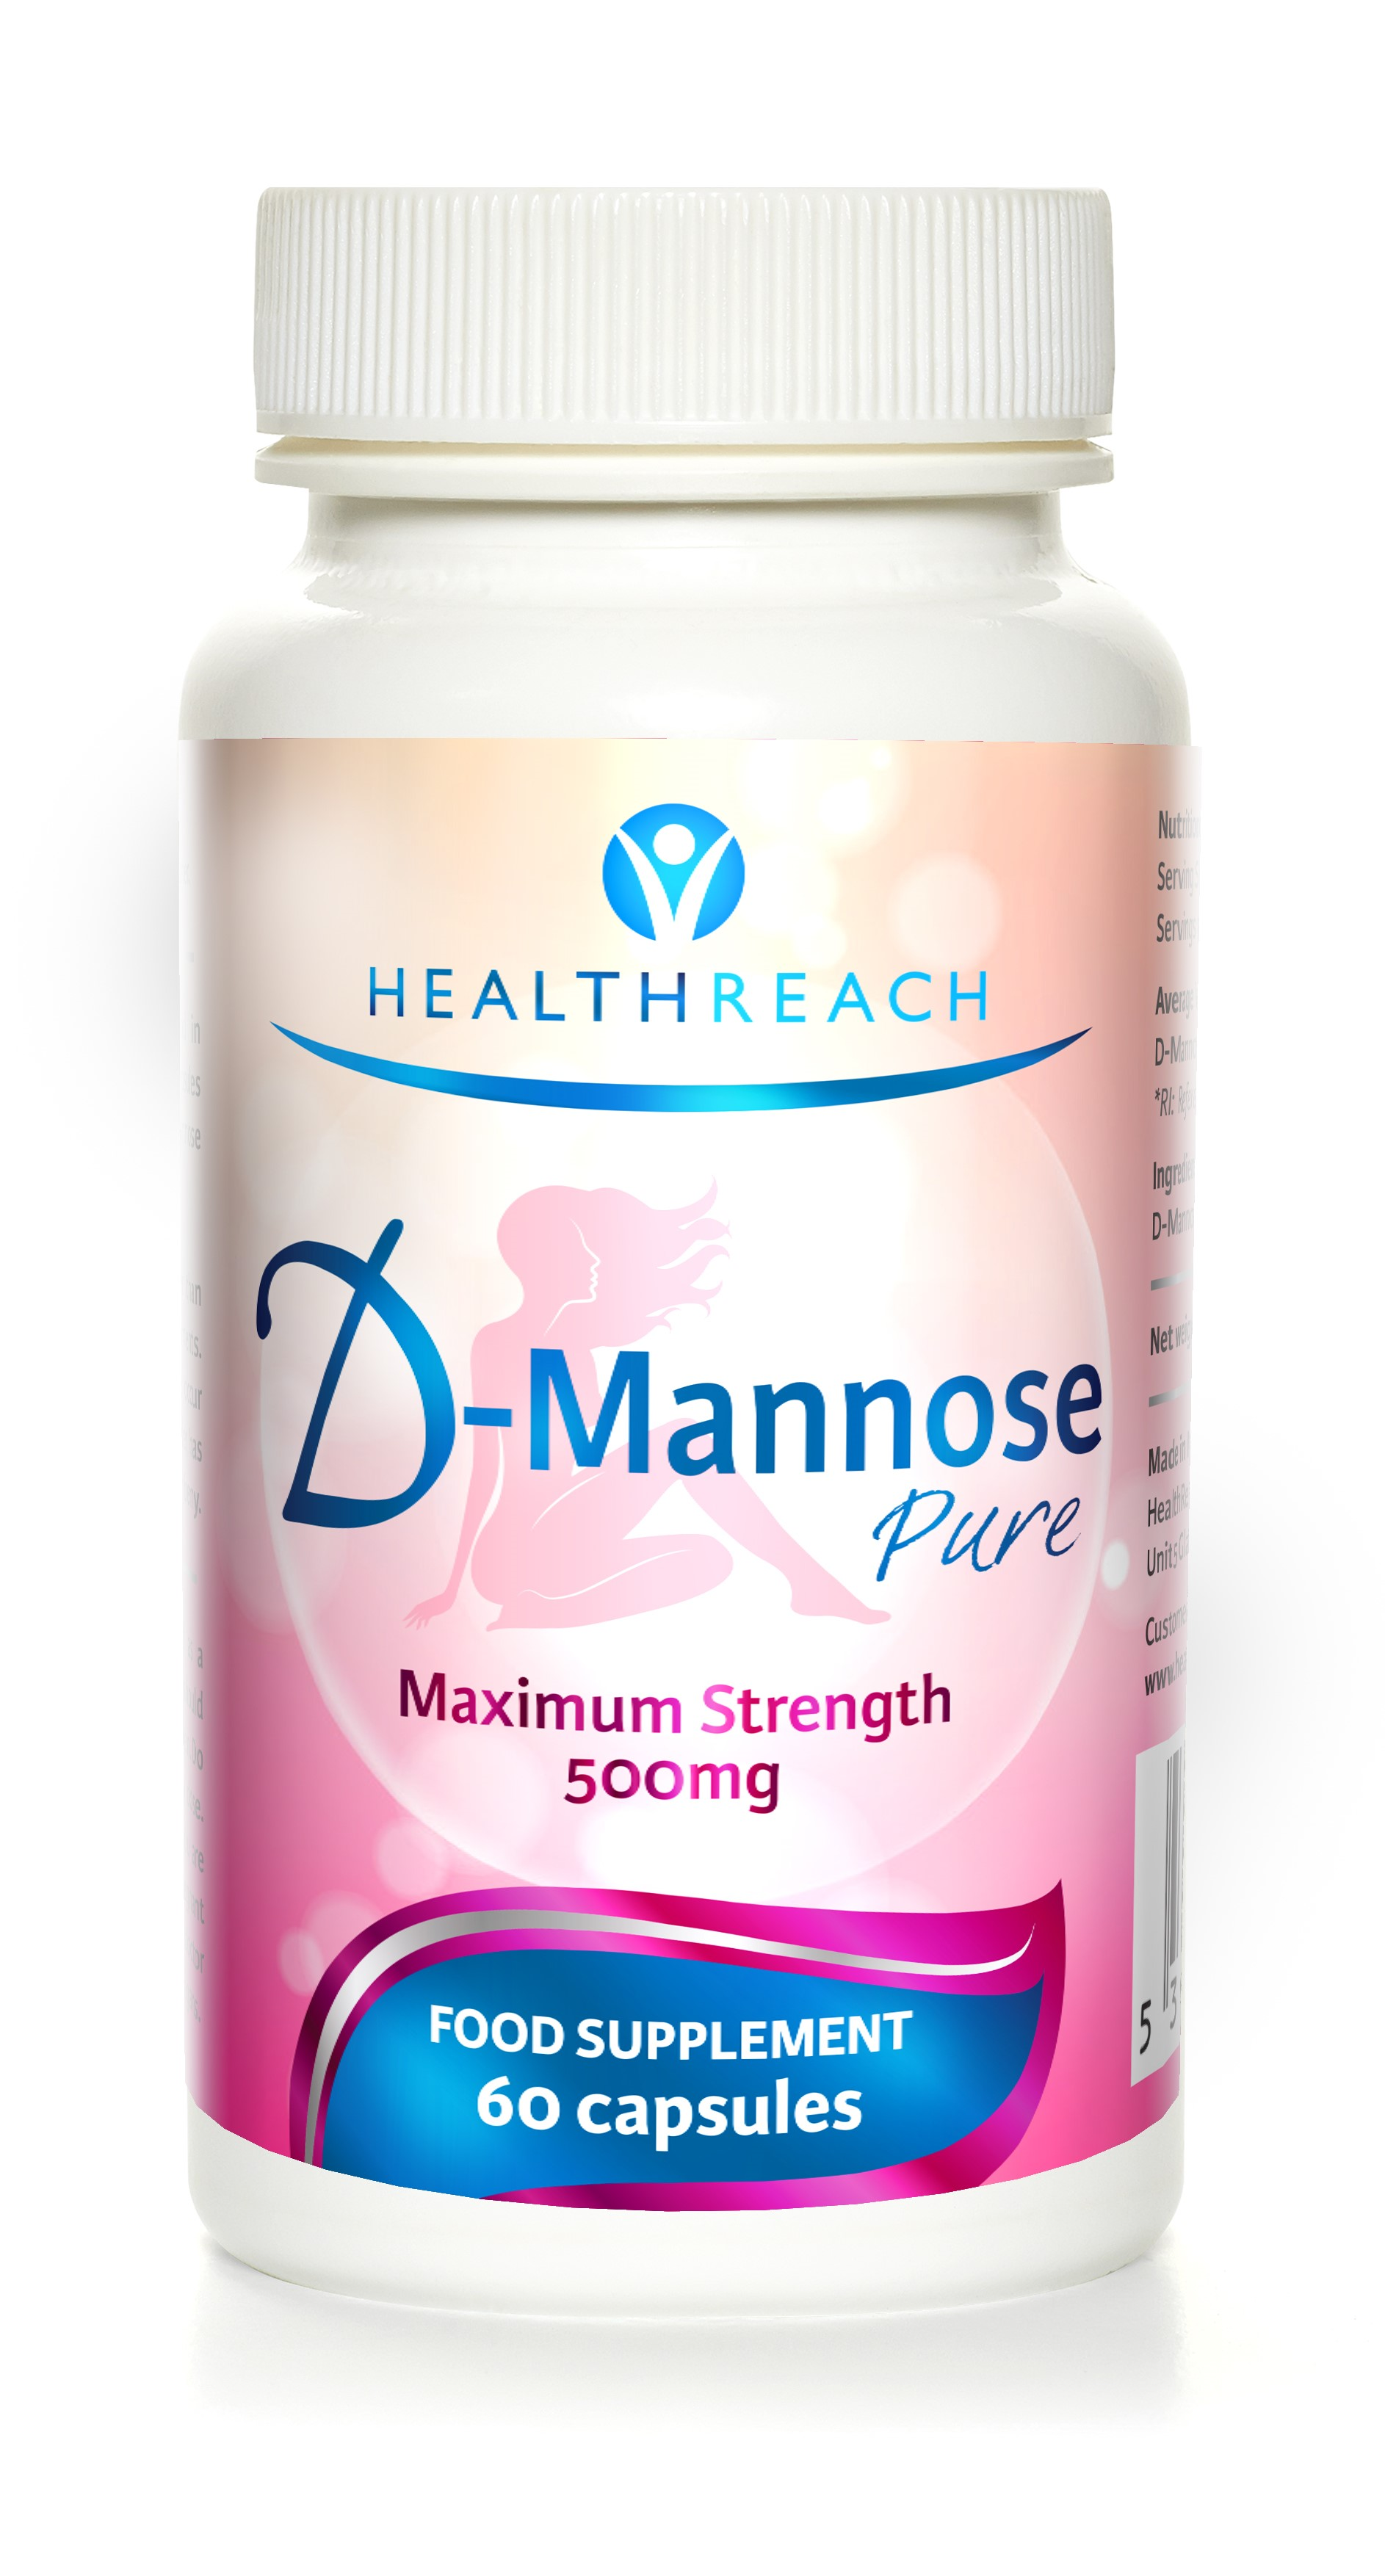 D-Mannose Pure 500mg 60's